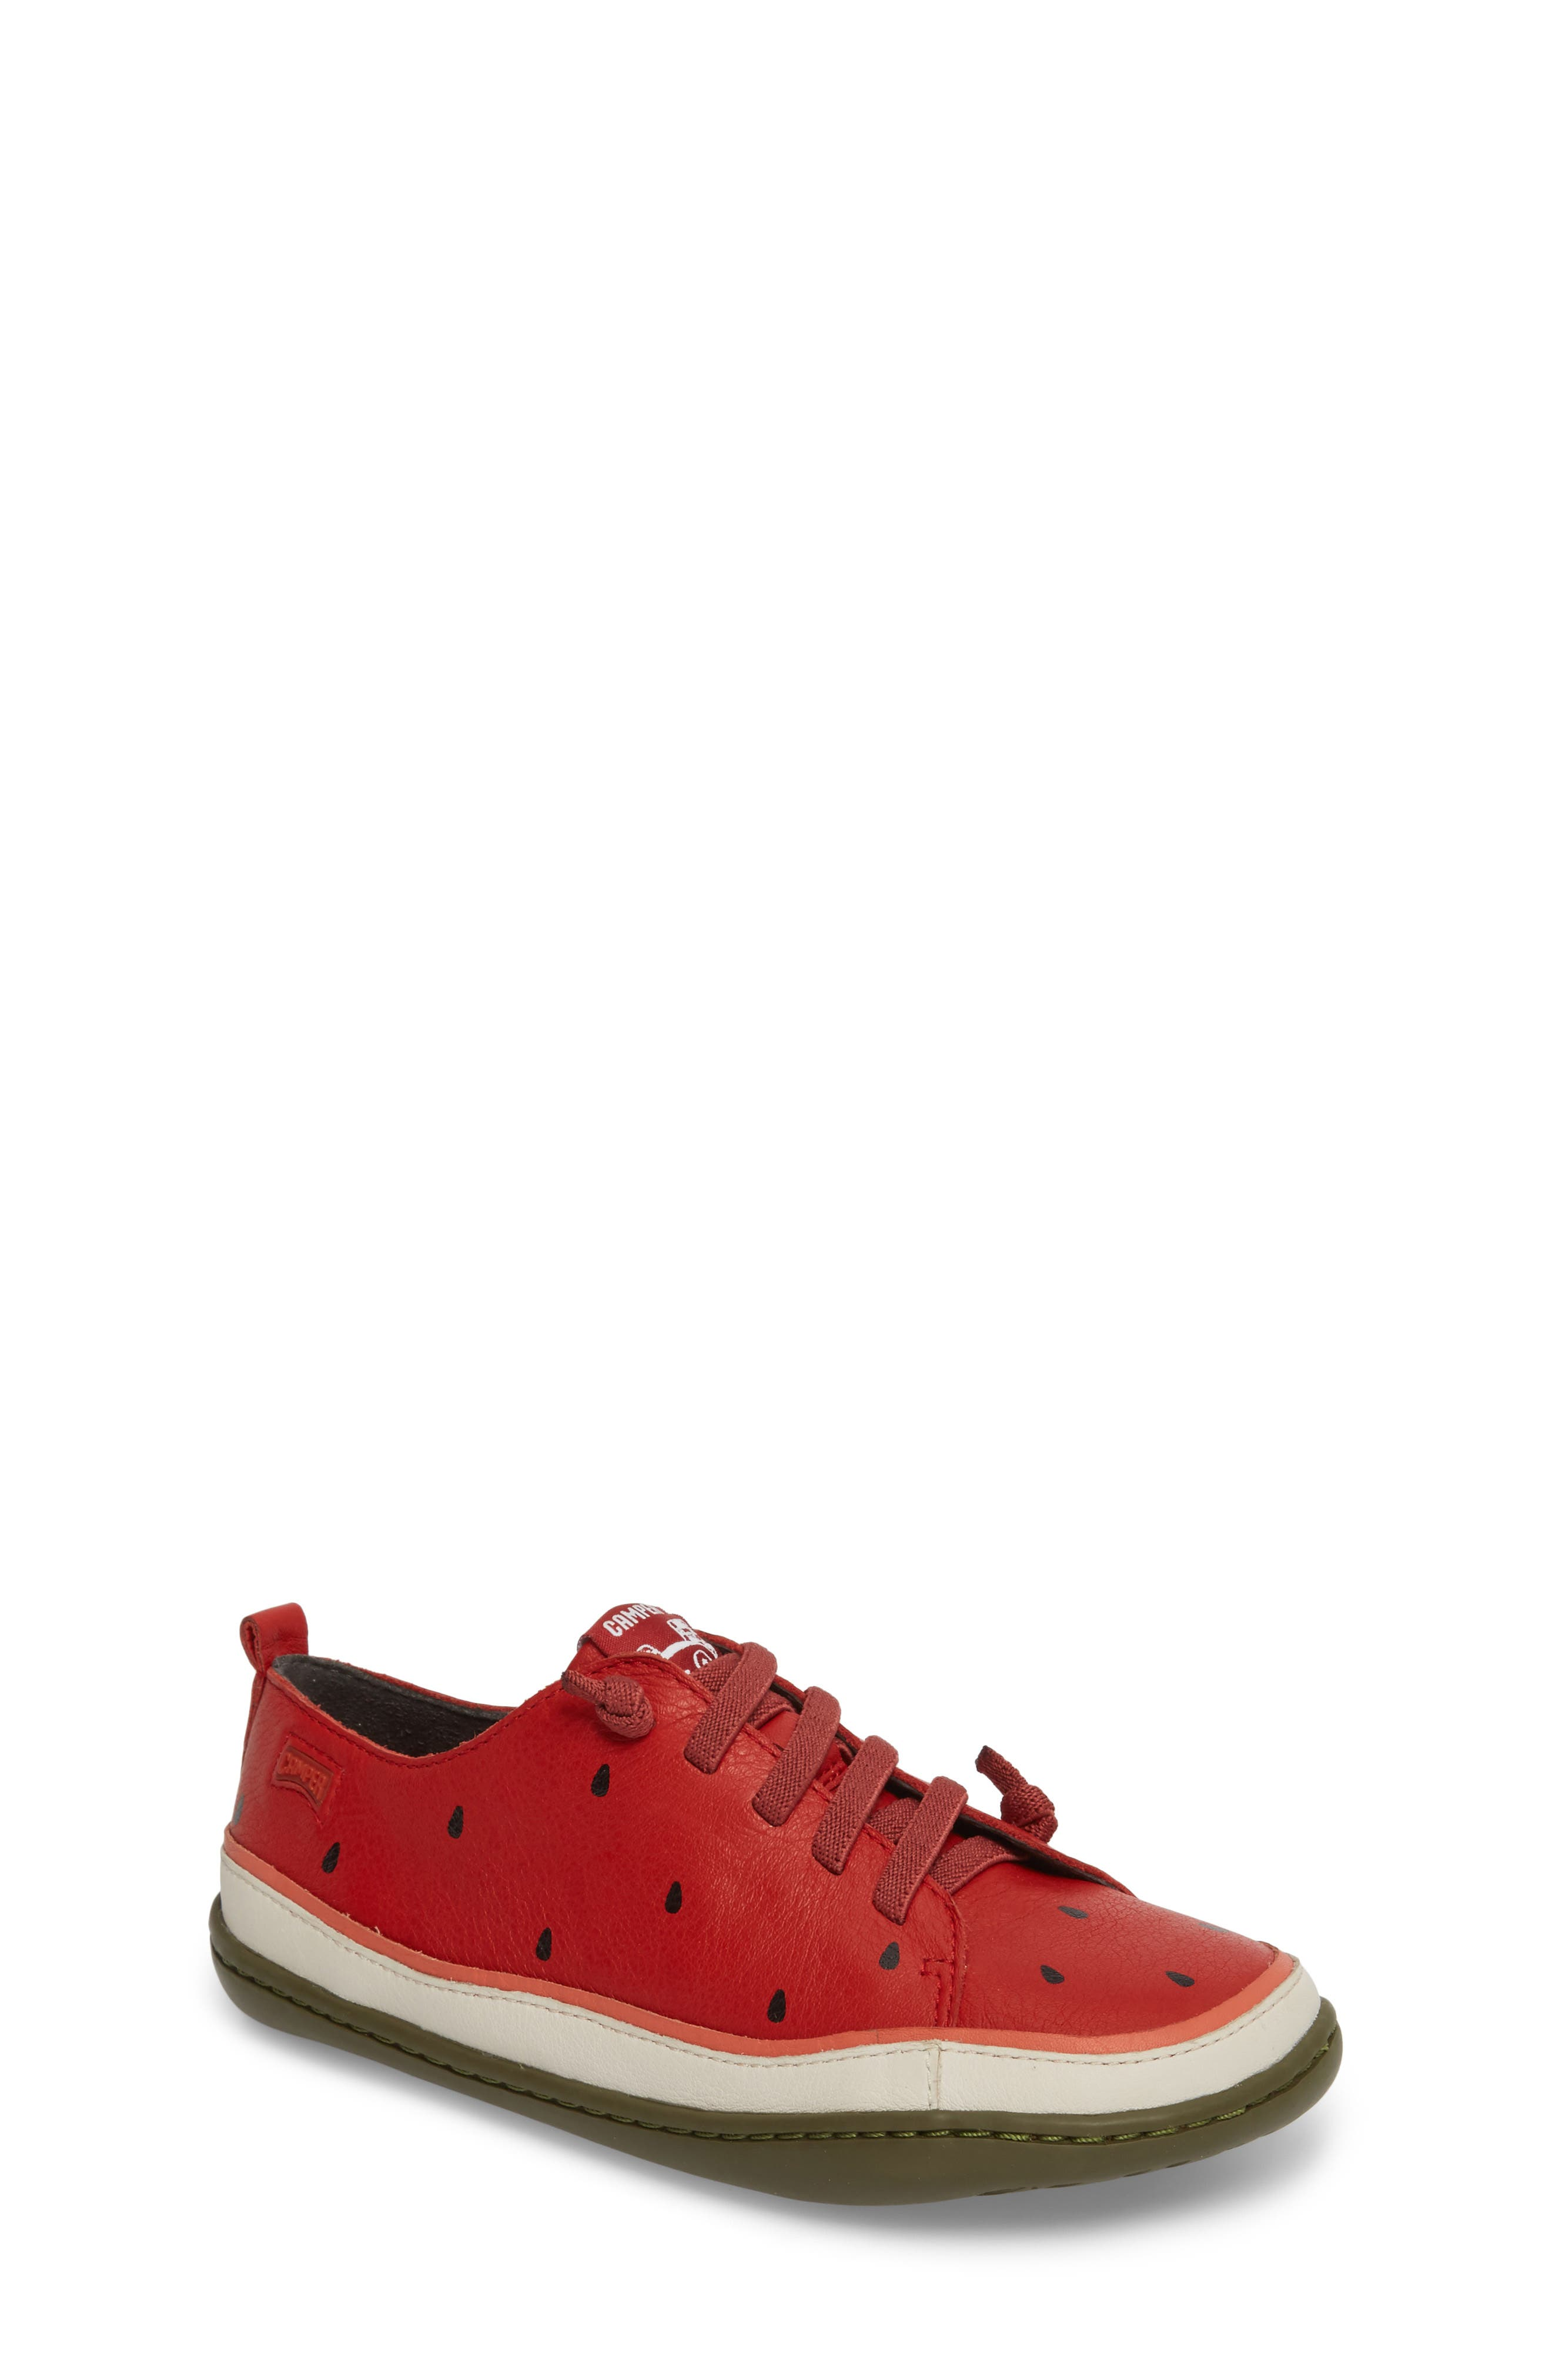 Twins Watermelon Sneaker,                         Main,                         color, 600